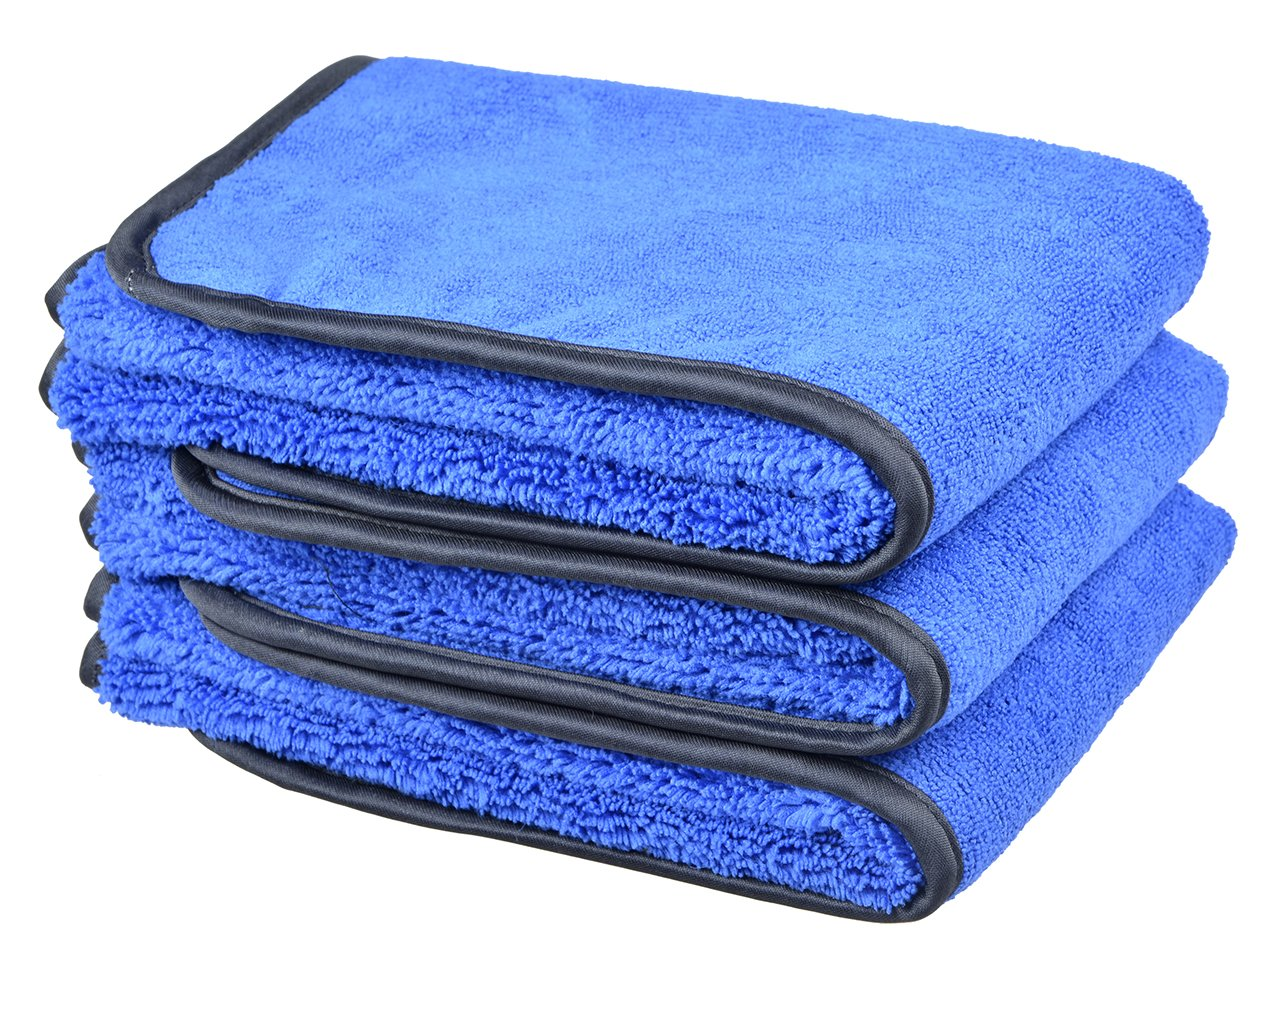 Microfiber Car Wash Cloths 400gsm Tow Different Sides for Cleaning Polishing 3-pack (16'x24', Bluex3) Sinland